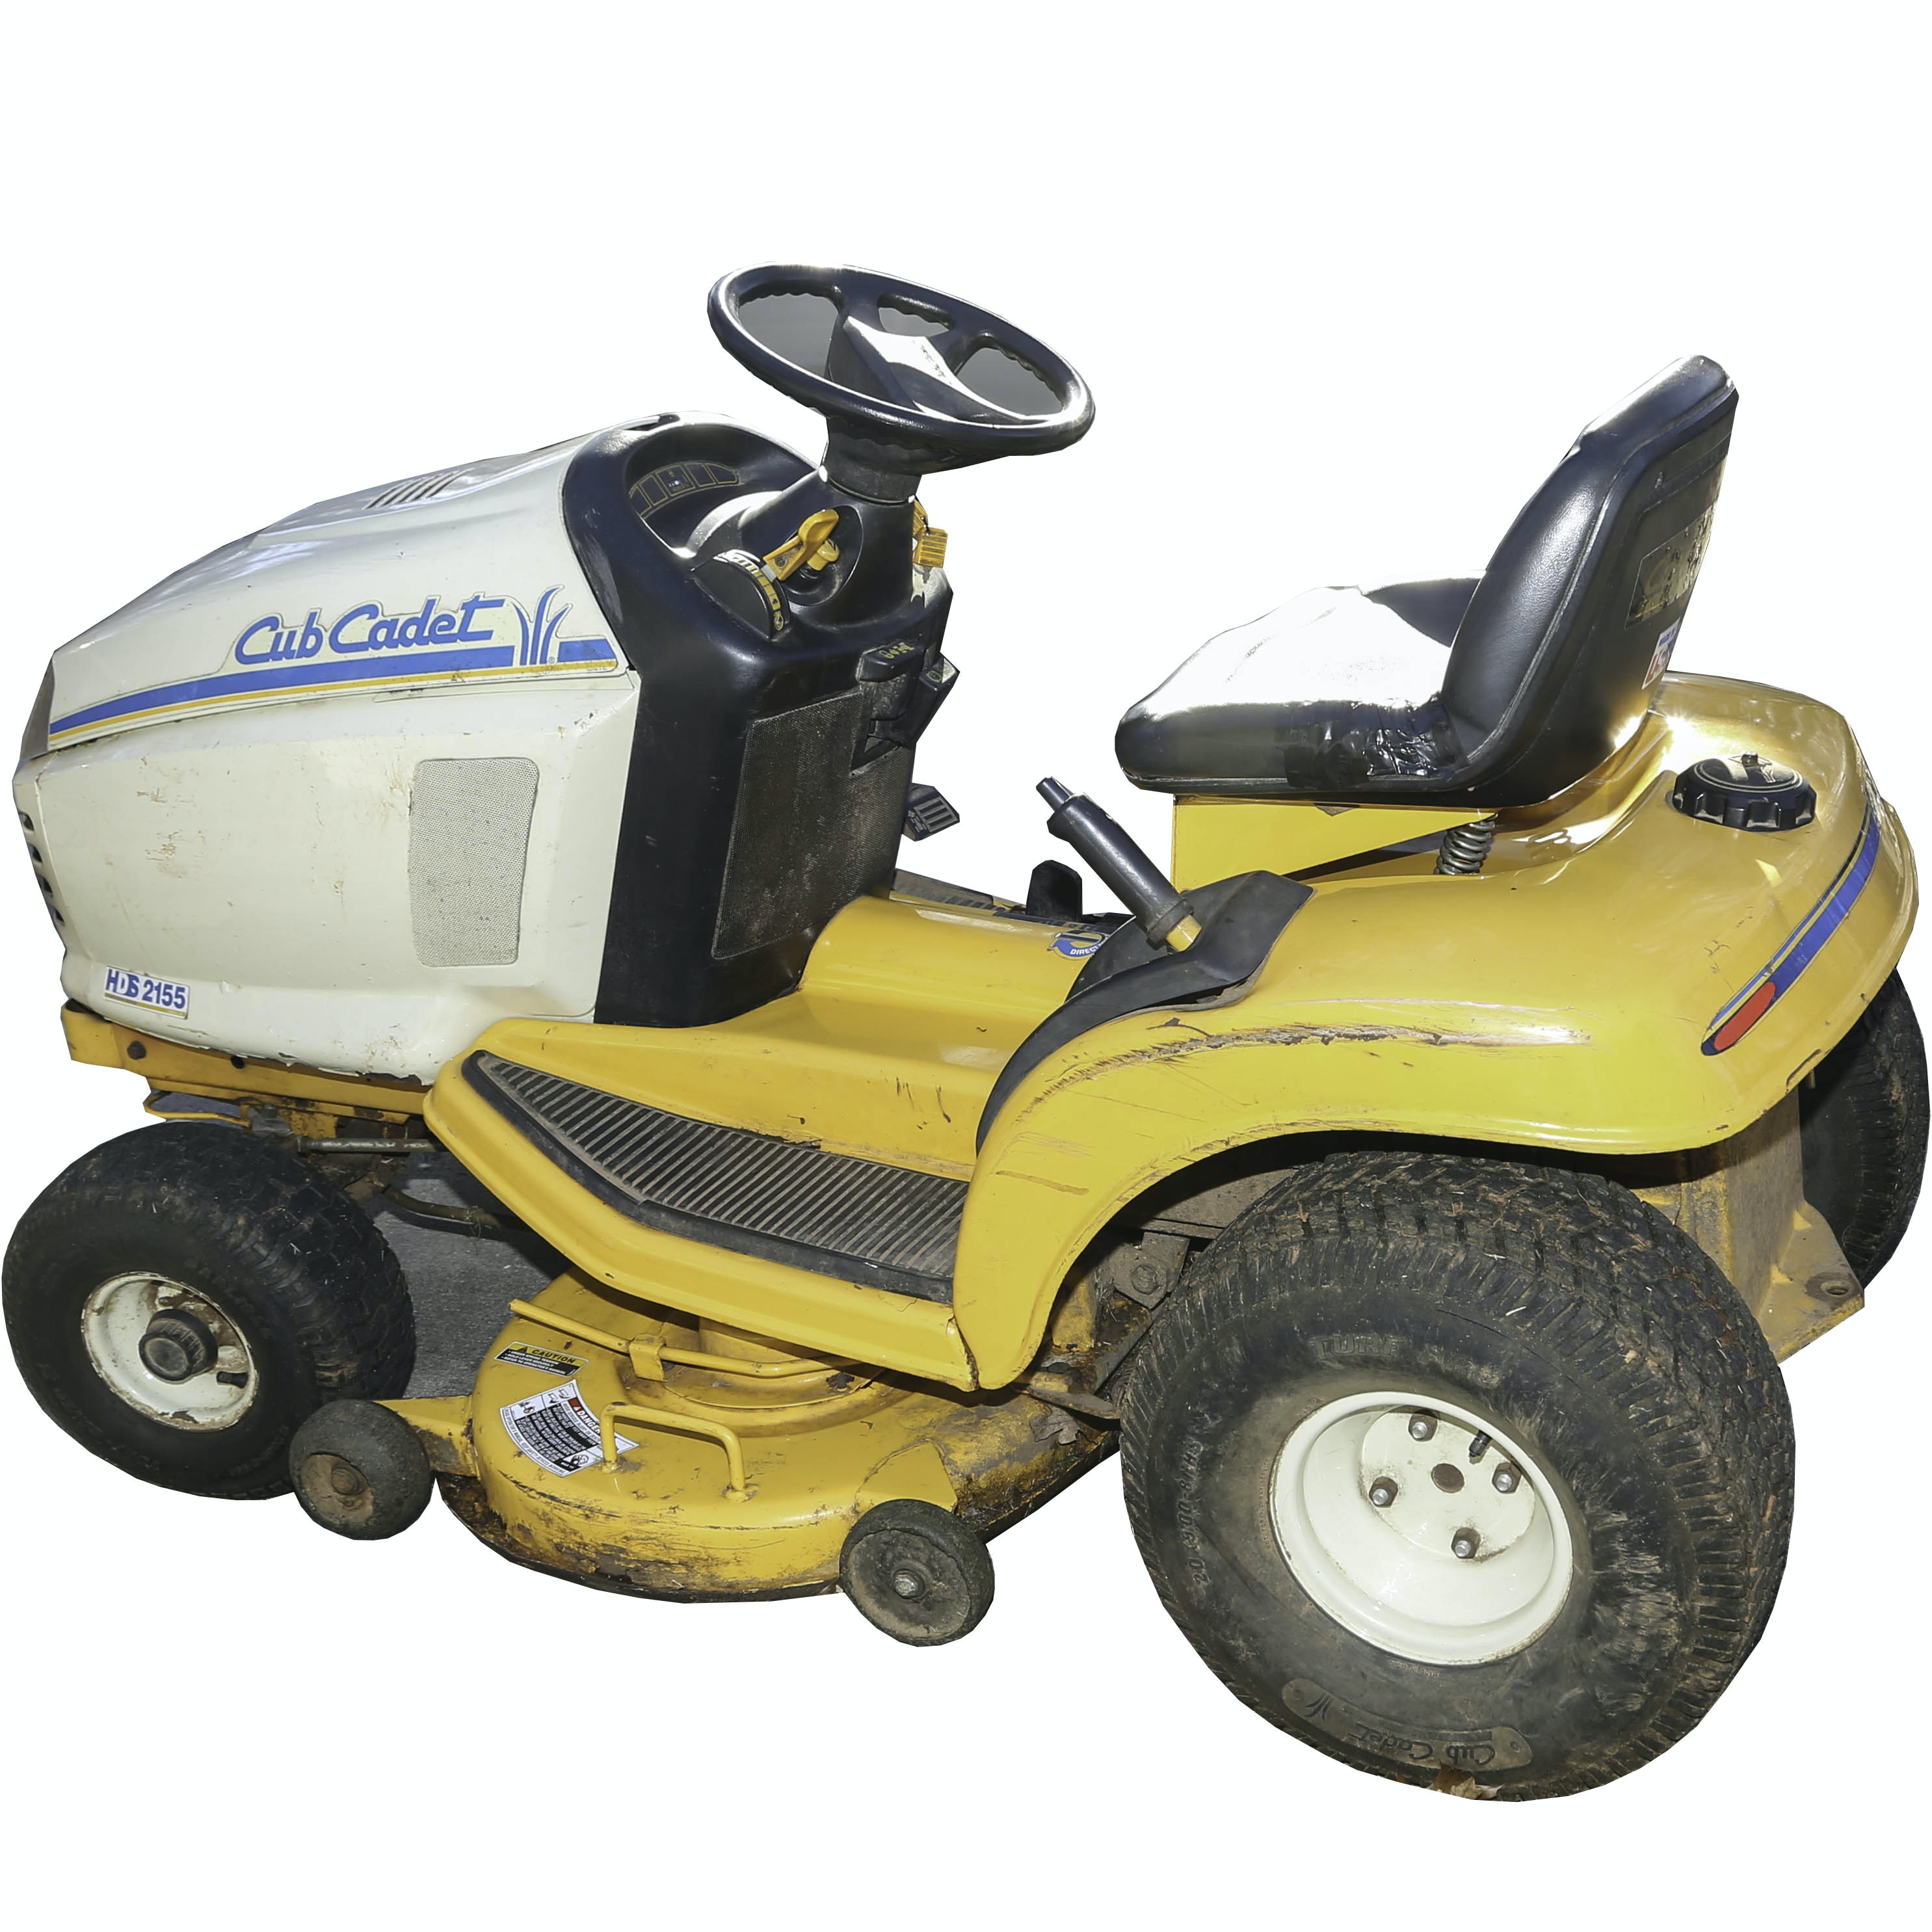 Club Cadet Riding Mower